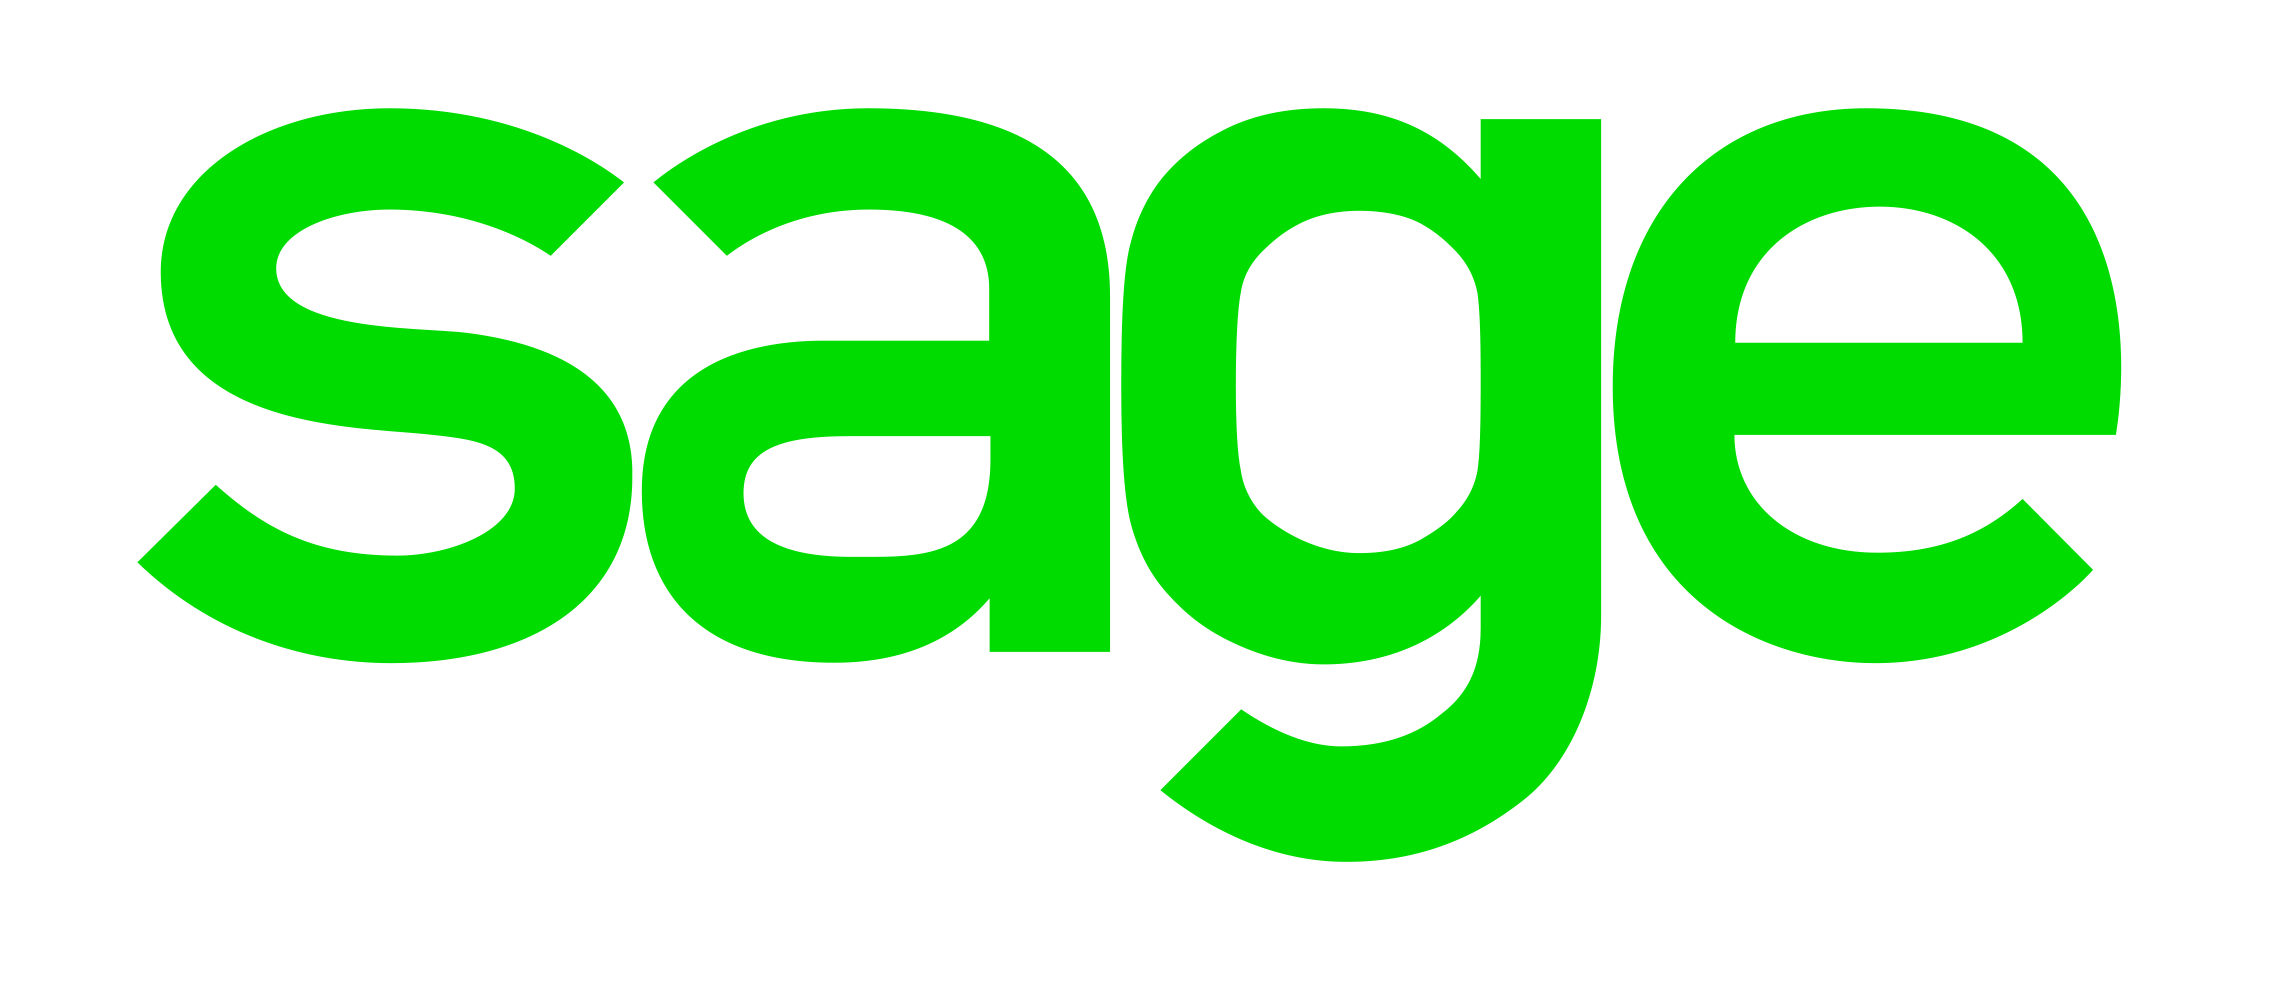 sage-logo-brilliant-green.png